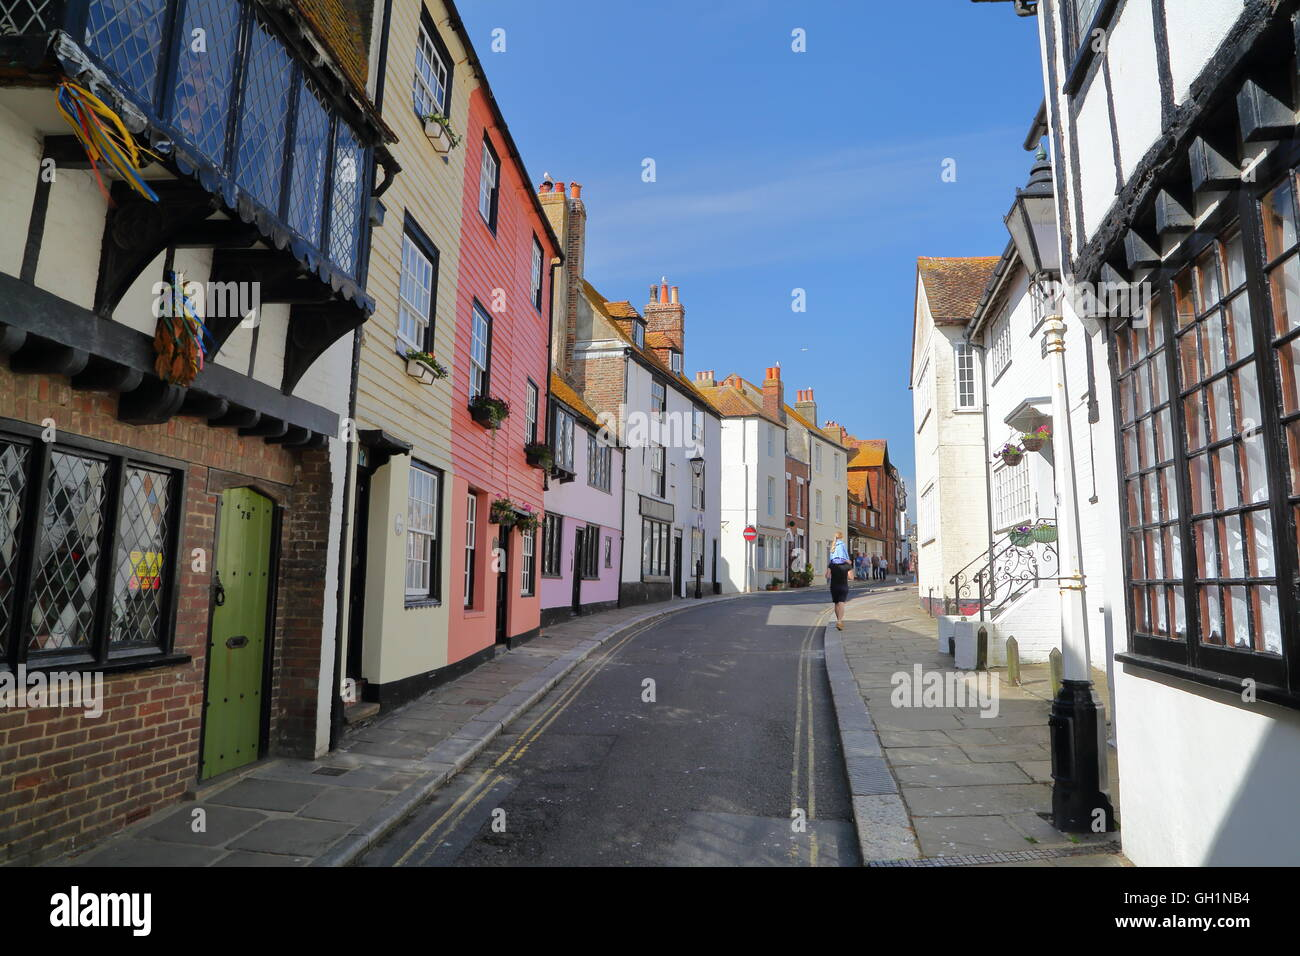 All Saints Street in Hastings Old town with colourful houses, Hastings, Sussex, Great britain - Stock Image